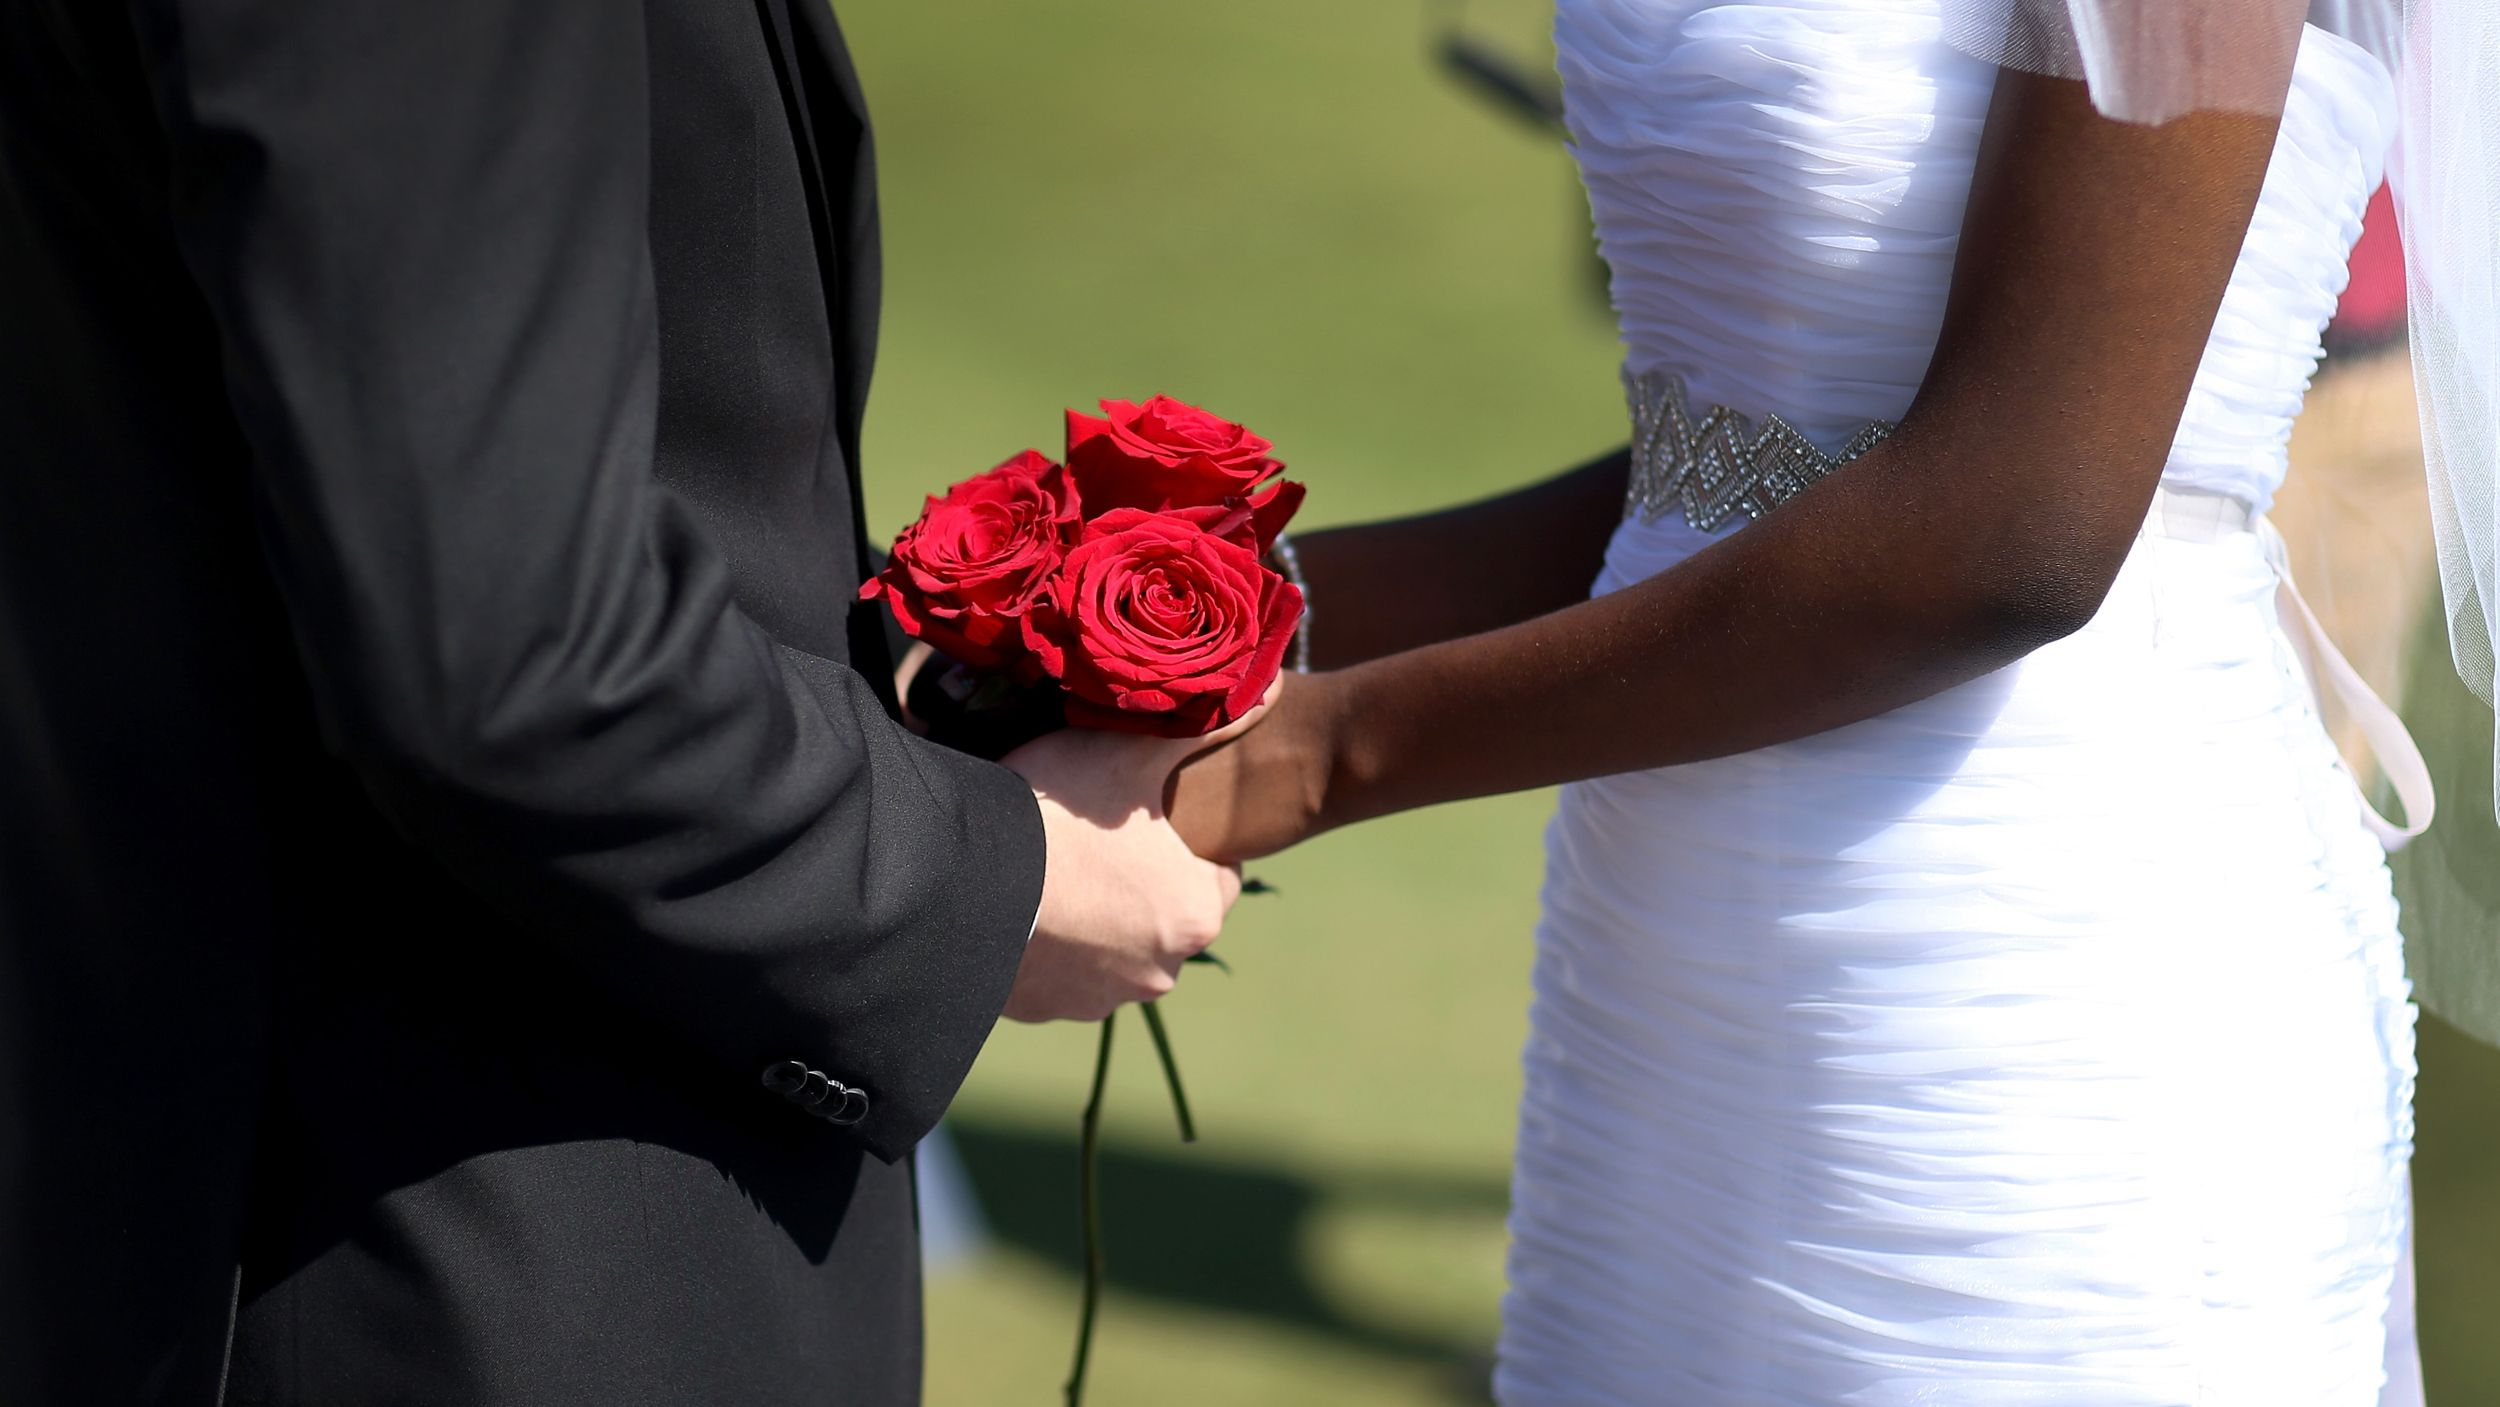 10 Surprising Signs That Lead to Divorce